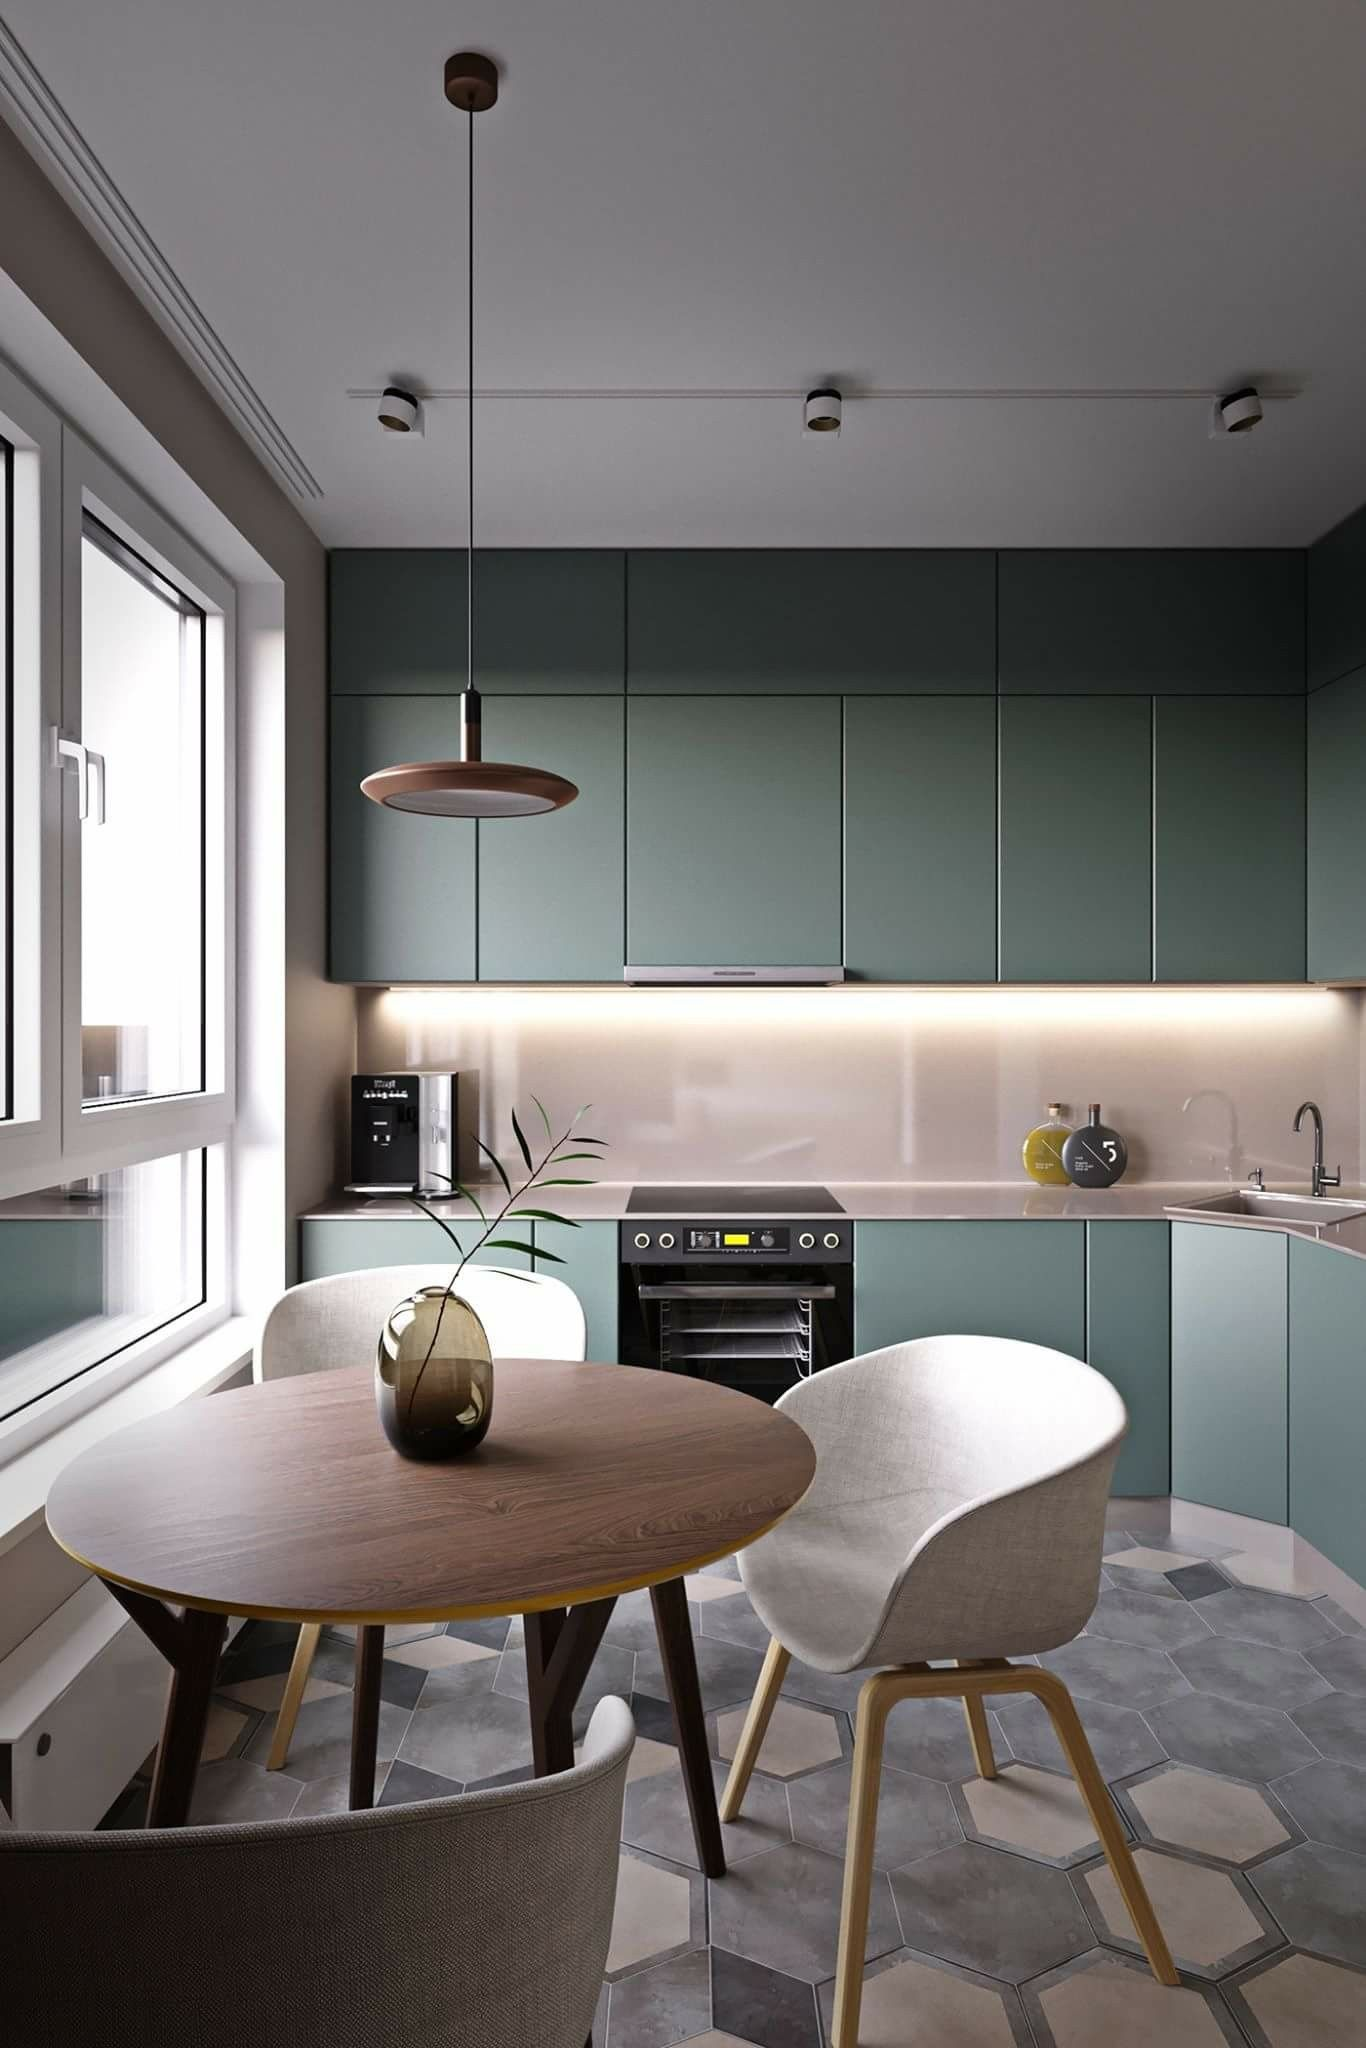 Modern home interior colors pin by jennie kay beauty on color love  pinterest  kitchen design